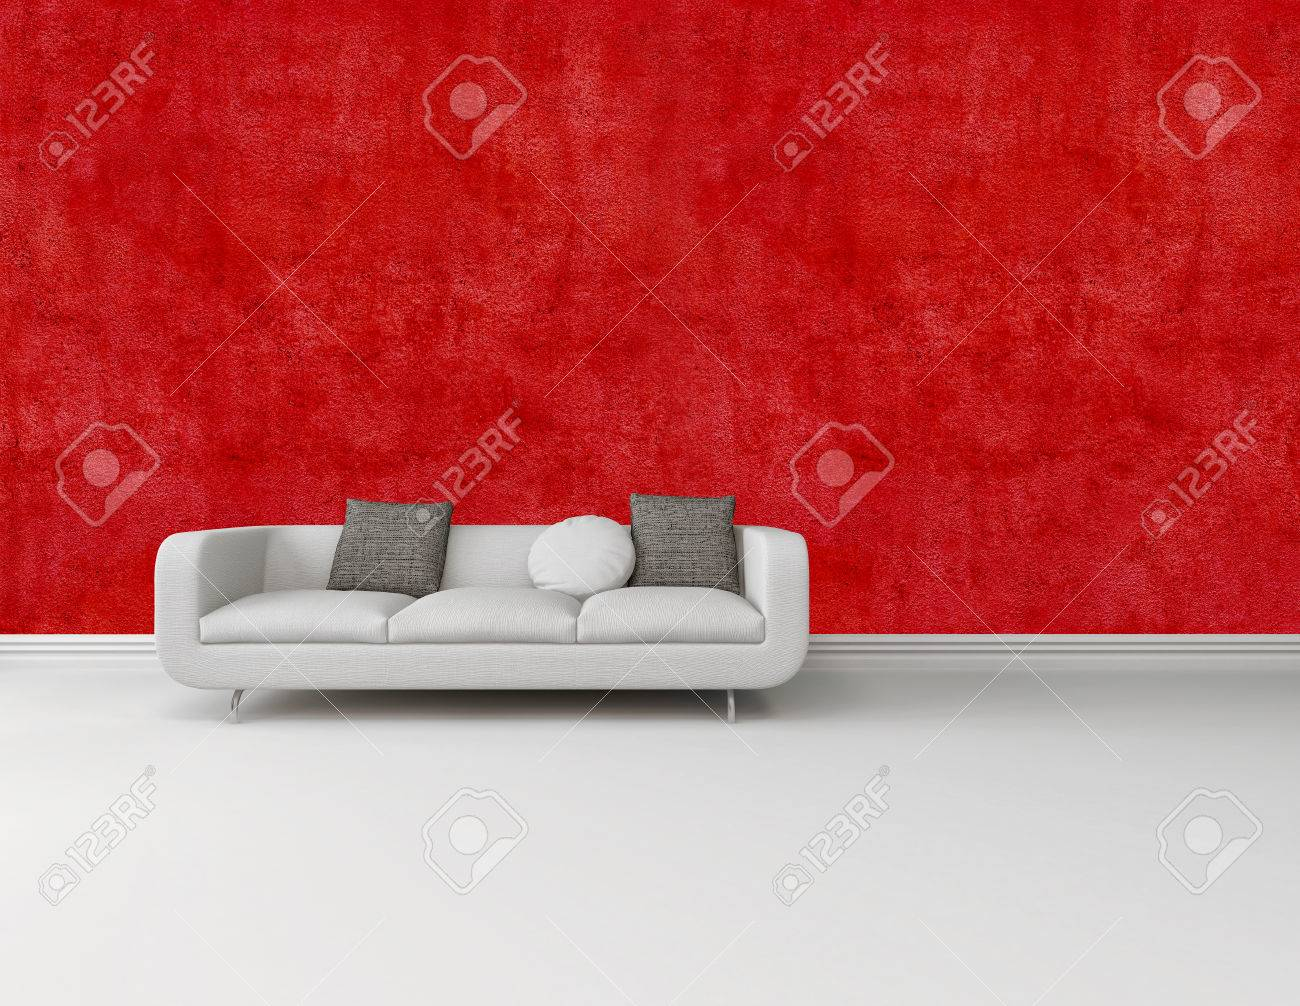 Modern White Sofa With Grey Cushions Against A Bright Red Wall On A White  Floor With